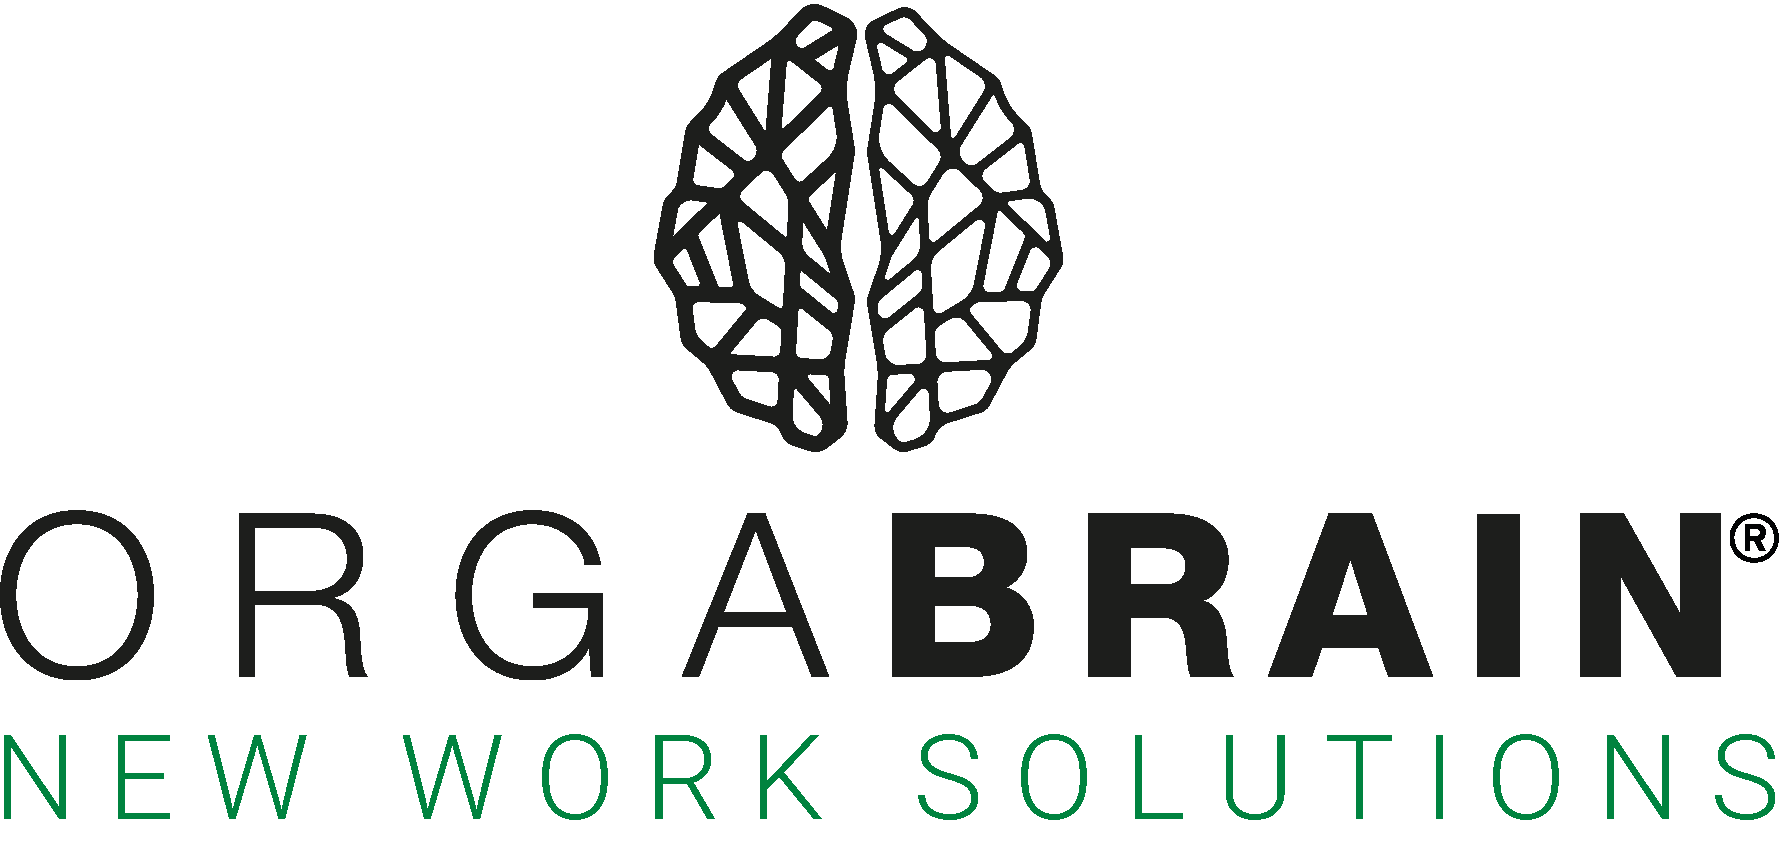 ORGABRAIN New Work Solutions